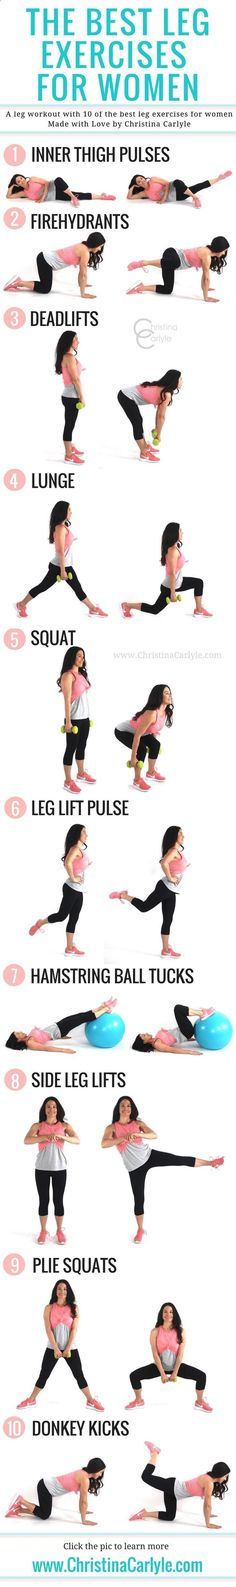 These are the best leg exercises for women that will help you tighten and tone your legs without bulking up. Do all of these exercises for a complete leg workout and you should really feel the burn. #legworkout #legexercises http://www.weightlosejumpsstar